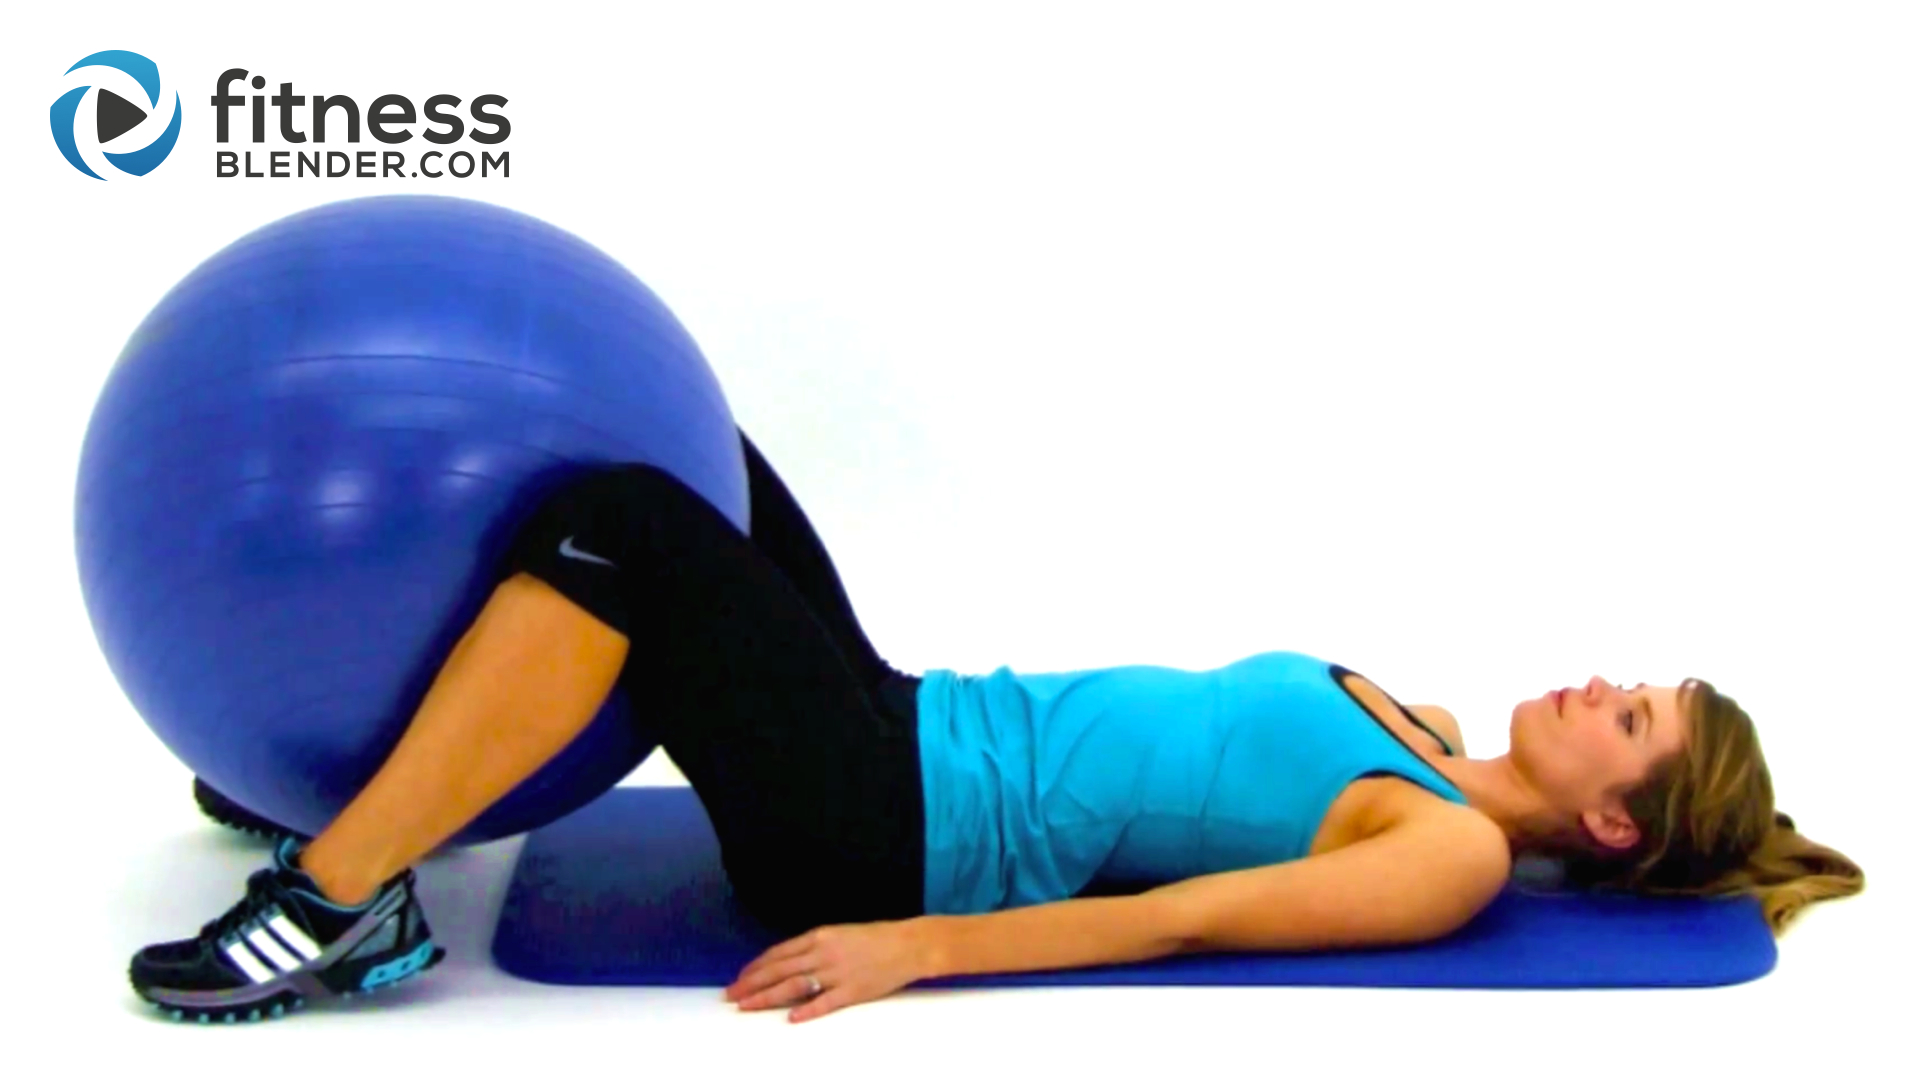 Total Body Exercise Ball Workout 10 Minute Physioball